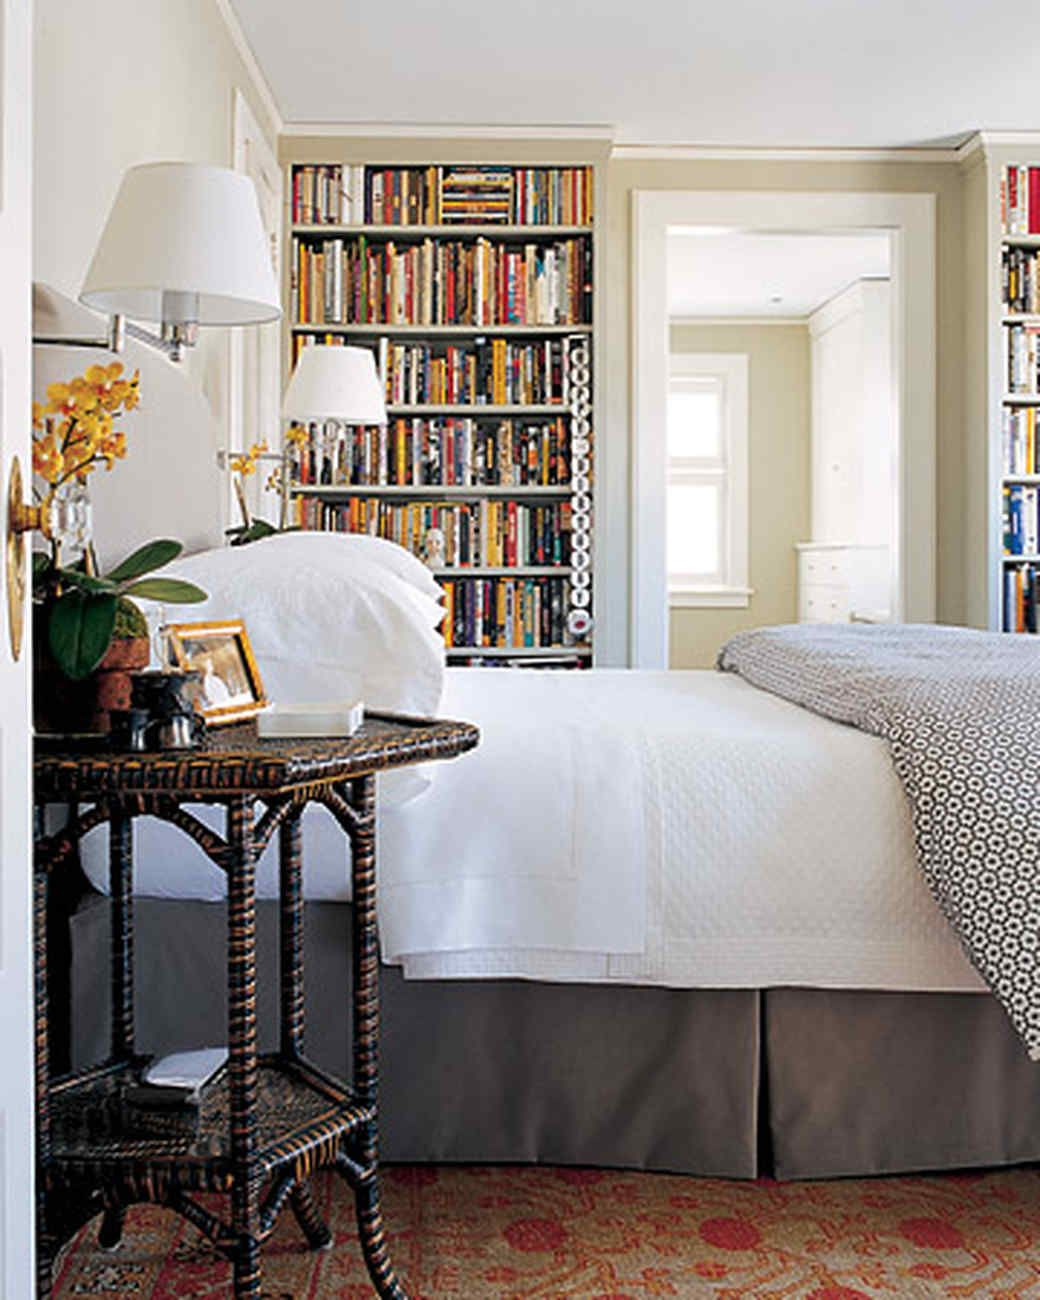 These Home Design Ideas For Bedrooms Offer Inspiration For